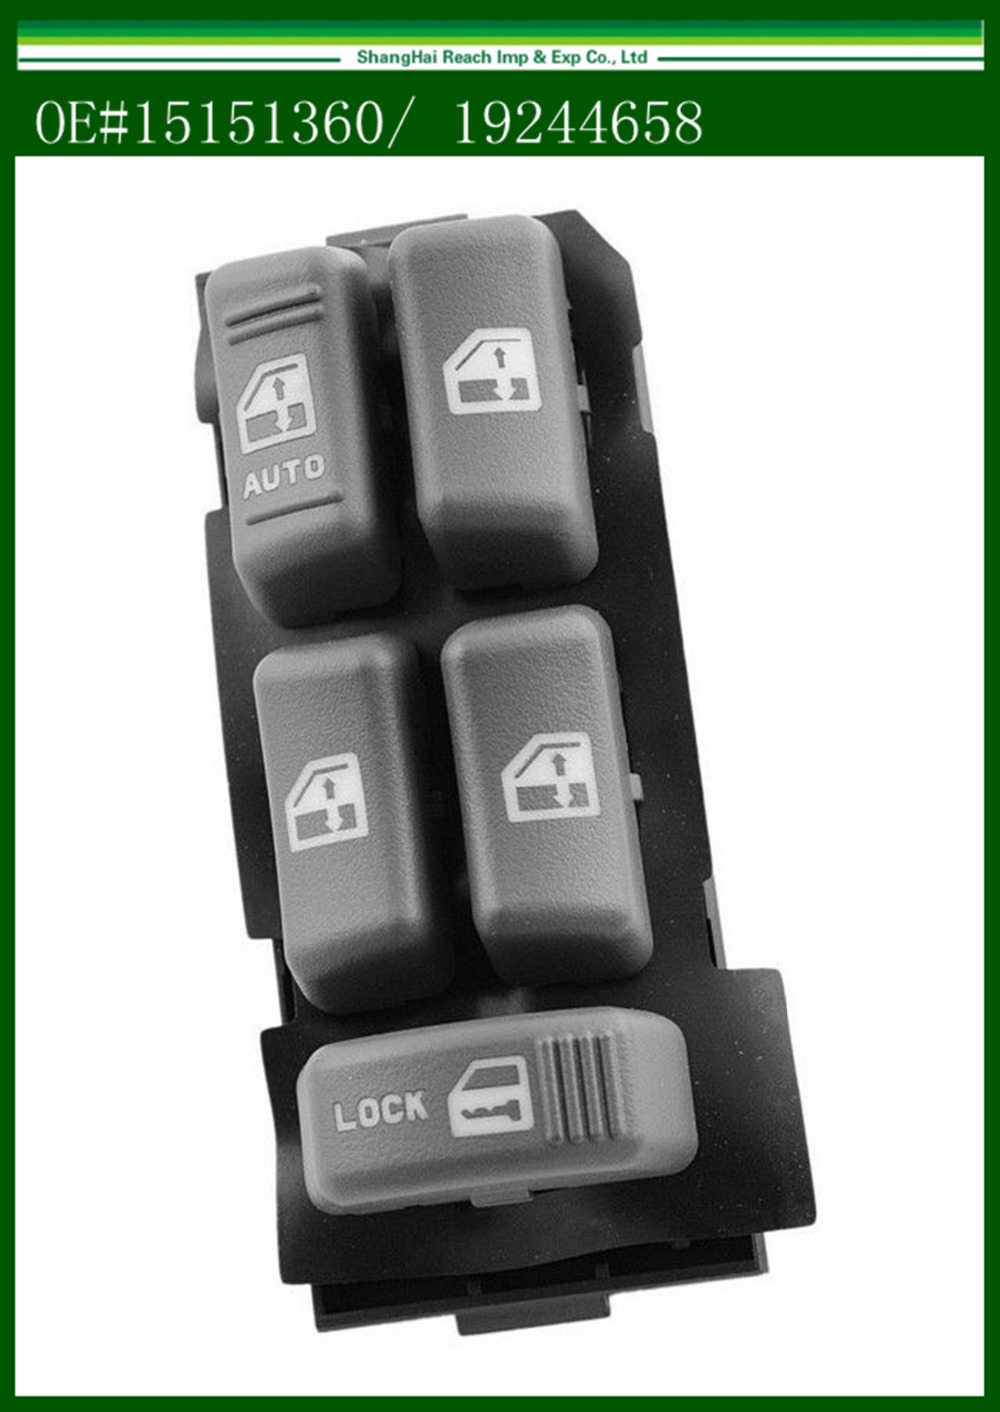 Truck Electric Power Window Master Switch for 1995-2005 GMC Chevrolet Cadillac OE#15151360/ 19244658(China (Mainland))